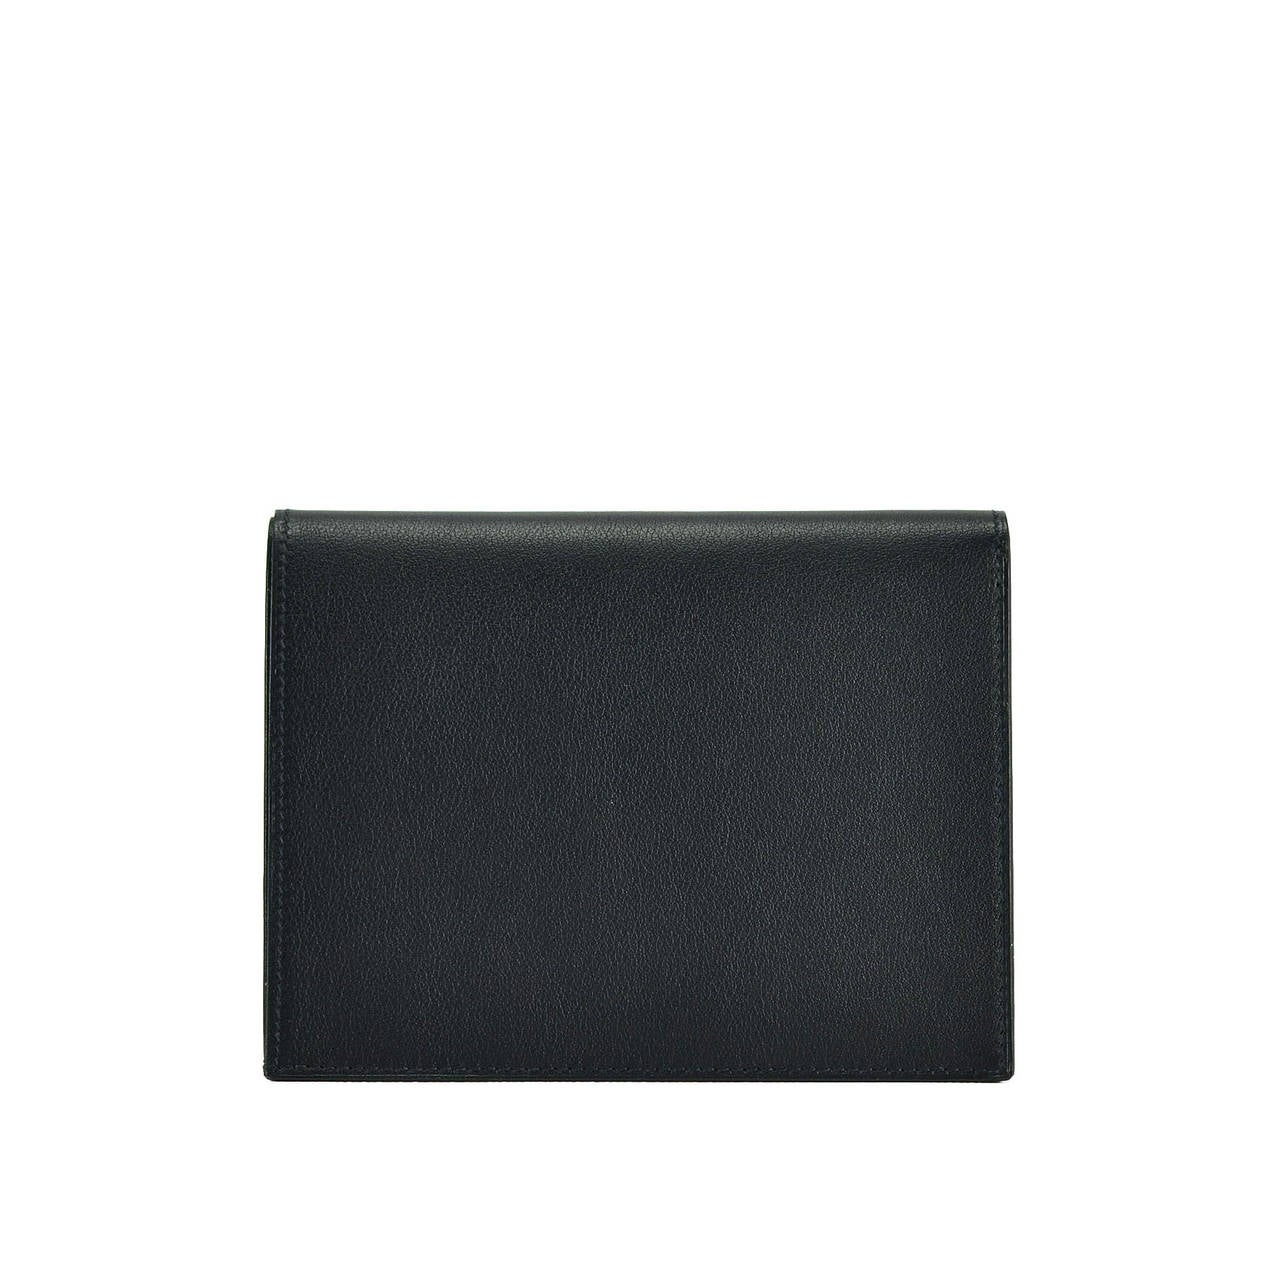 hermes Citizen Twill black/lead grey